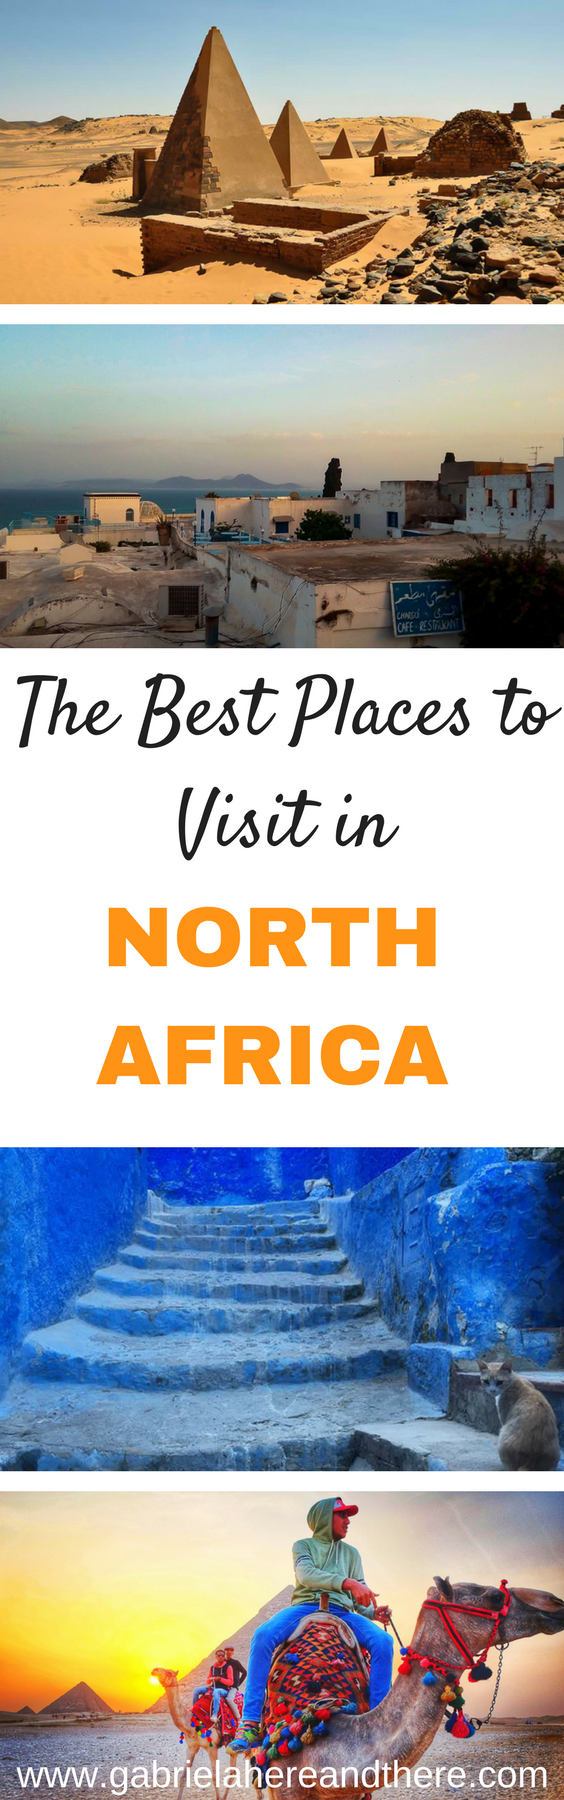 The Best Places to Visit in North Africa